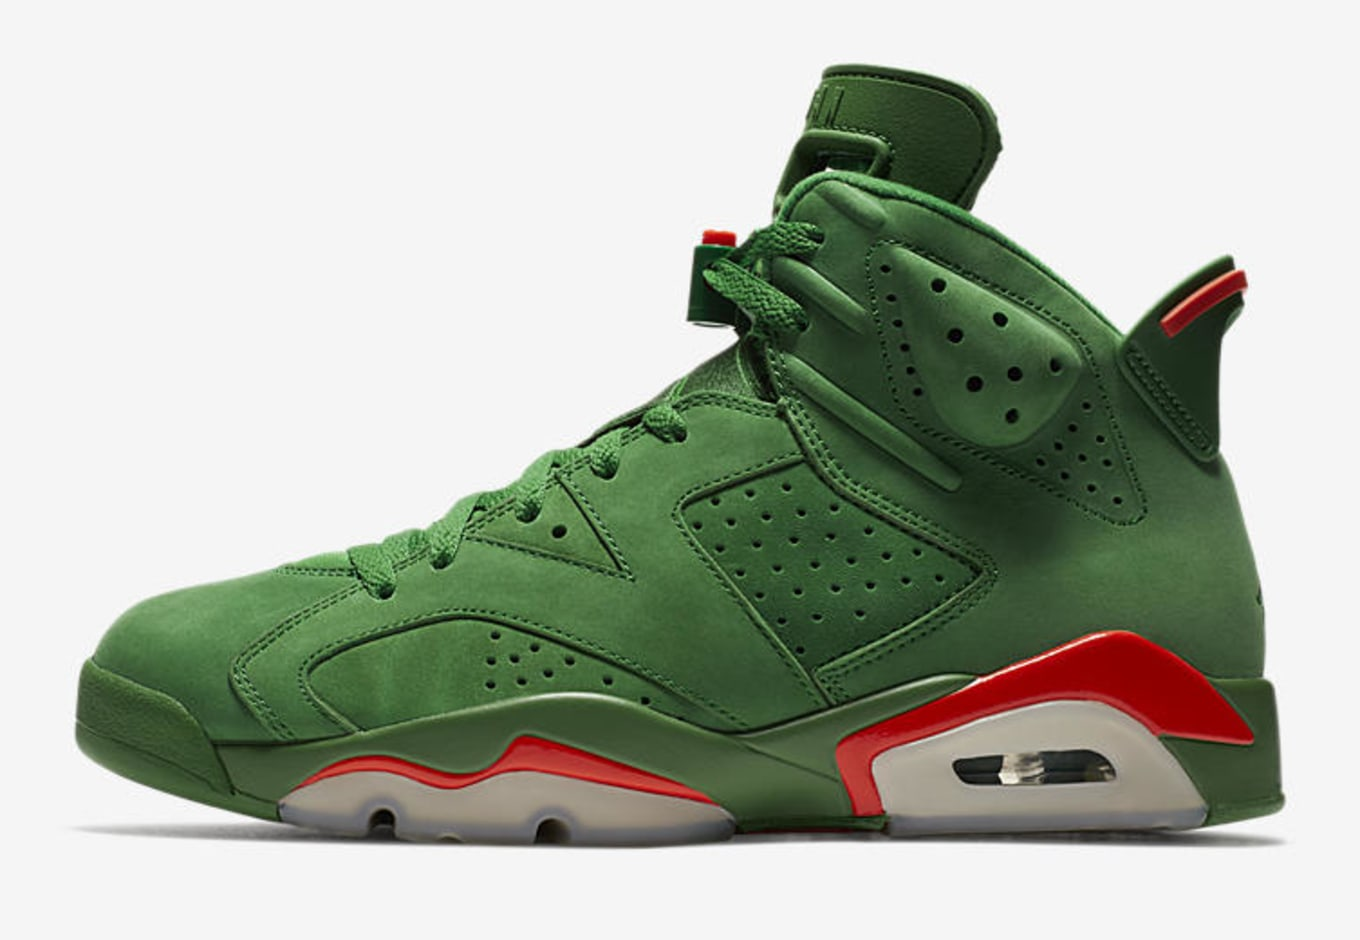 84034e4ef291e8 Where to Buy Air Jordan 6 Gatorade Green